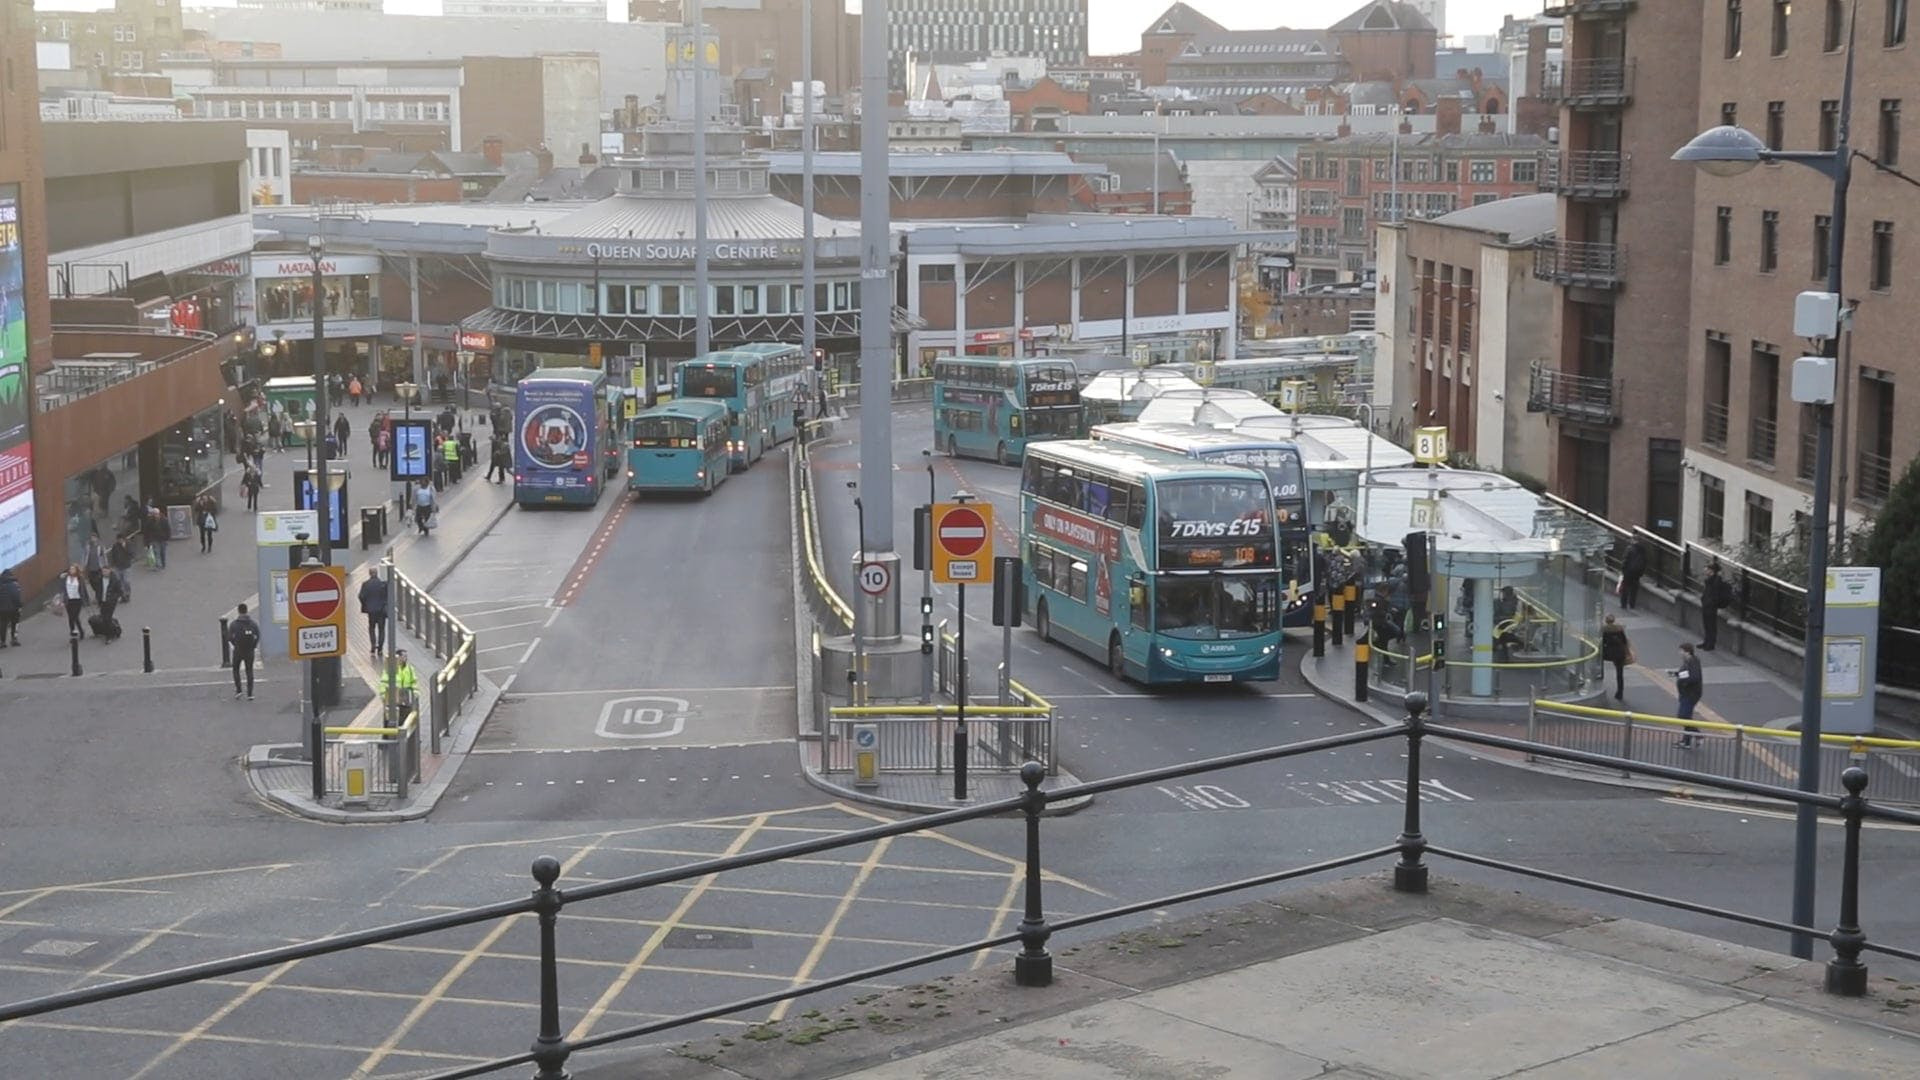 A View Of City And Public Buses